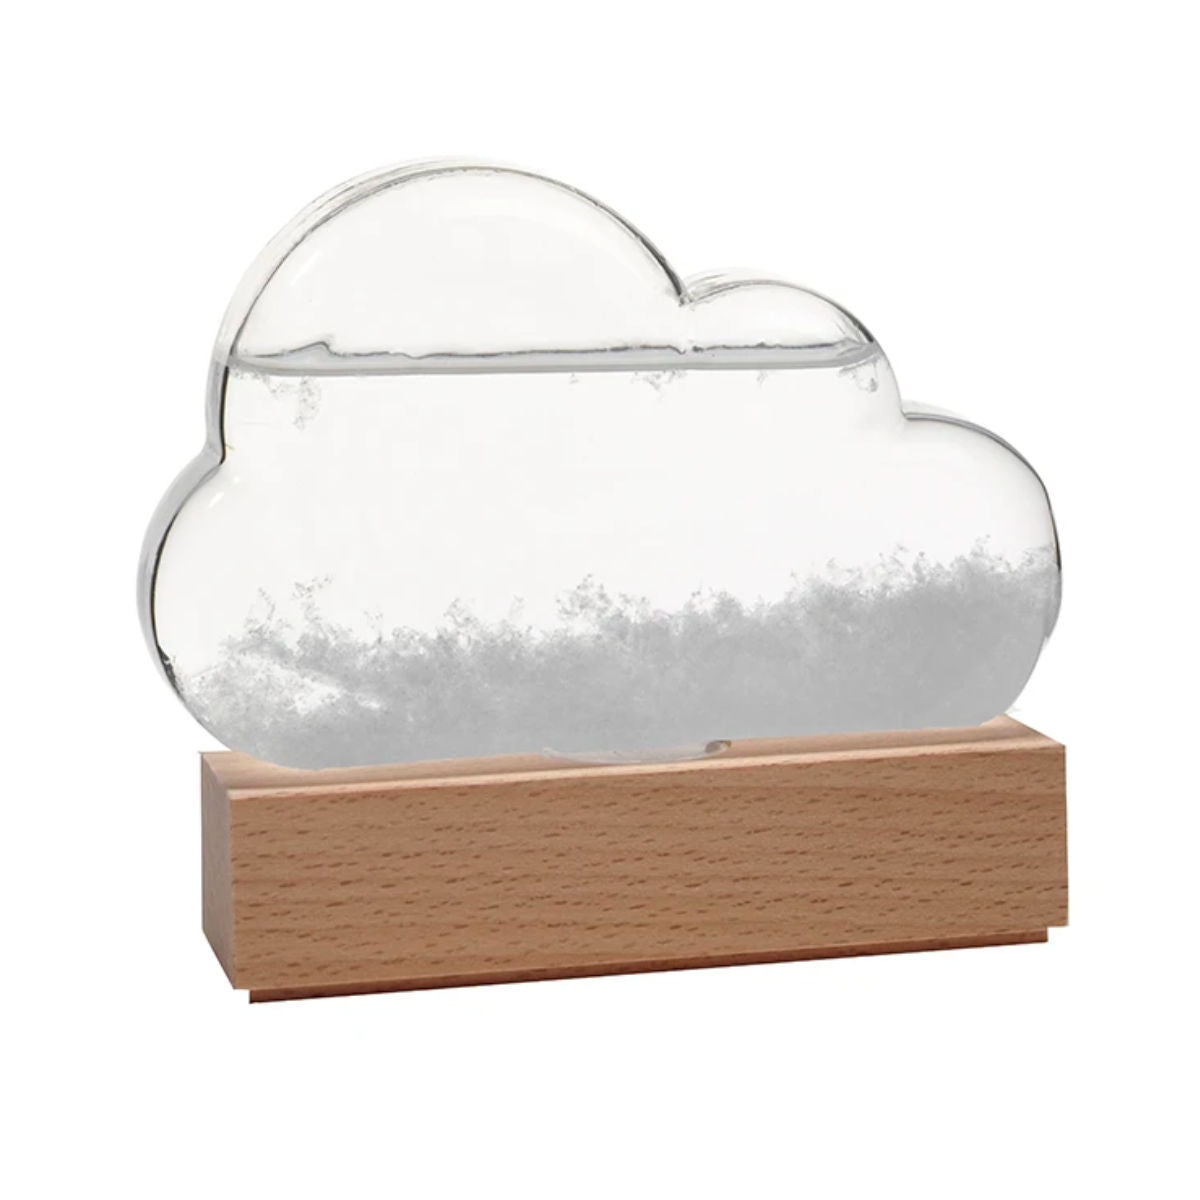 Bitten Design Storm Cloud weather predicting station